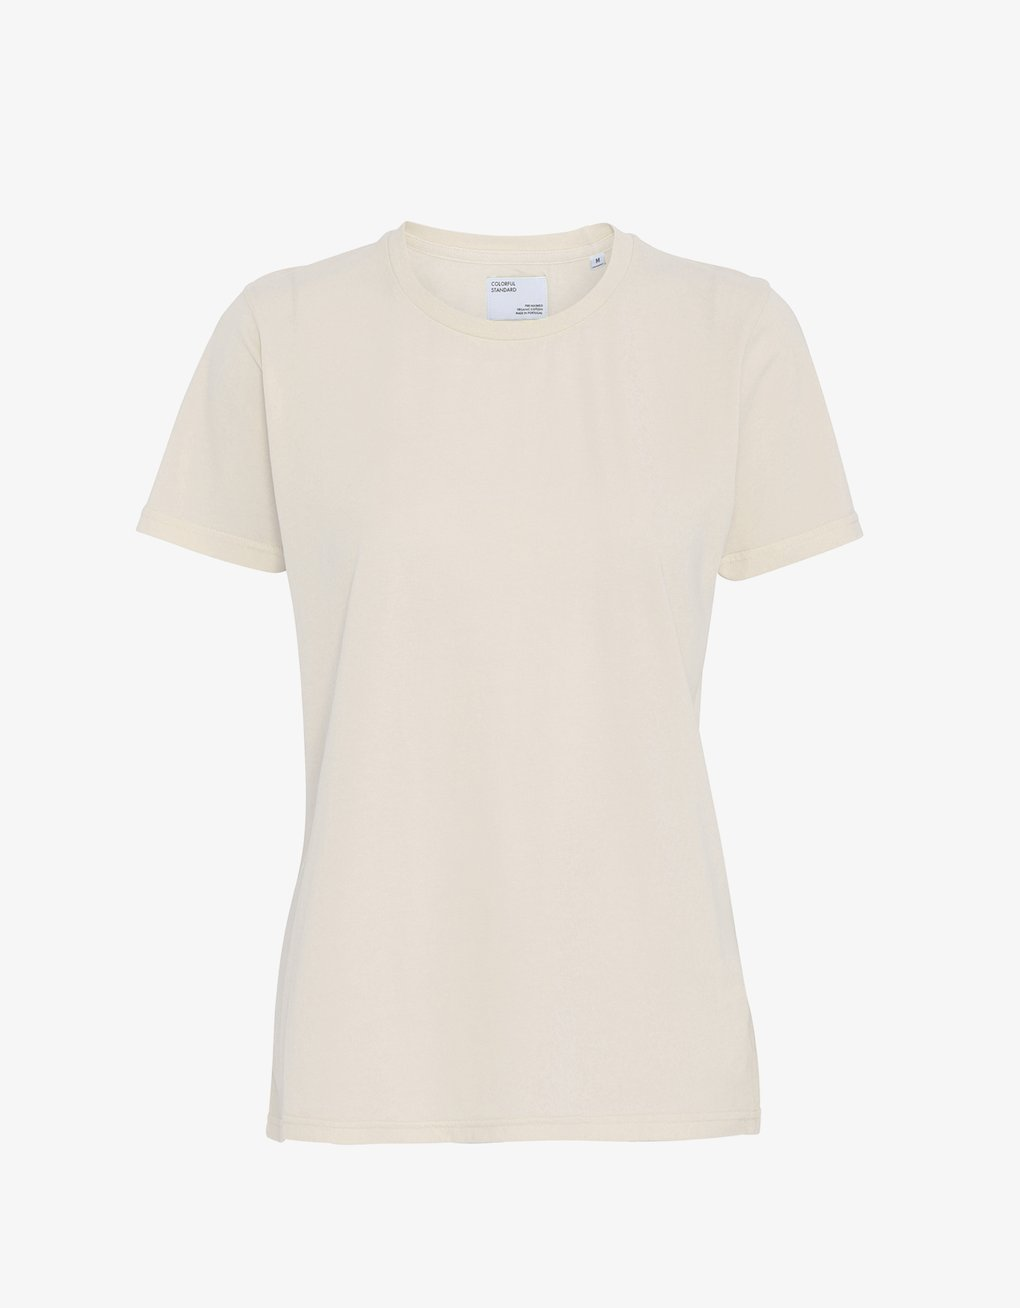 COLORFUL STANDARD | Women Organic T-shirt | Ivory White - LONDØNWORKS